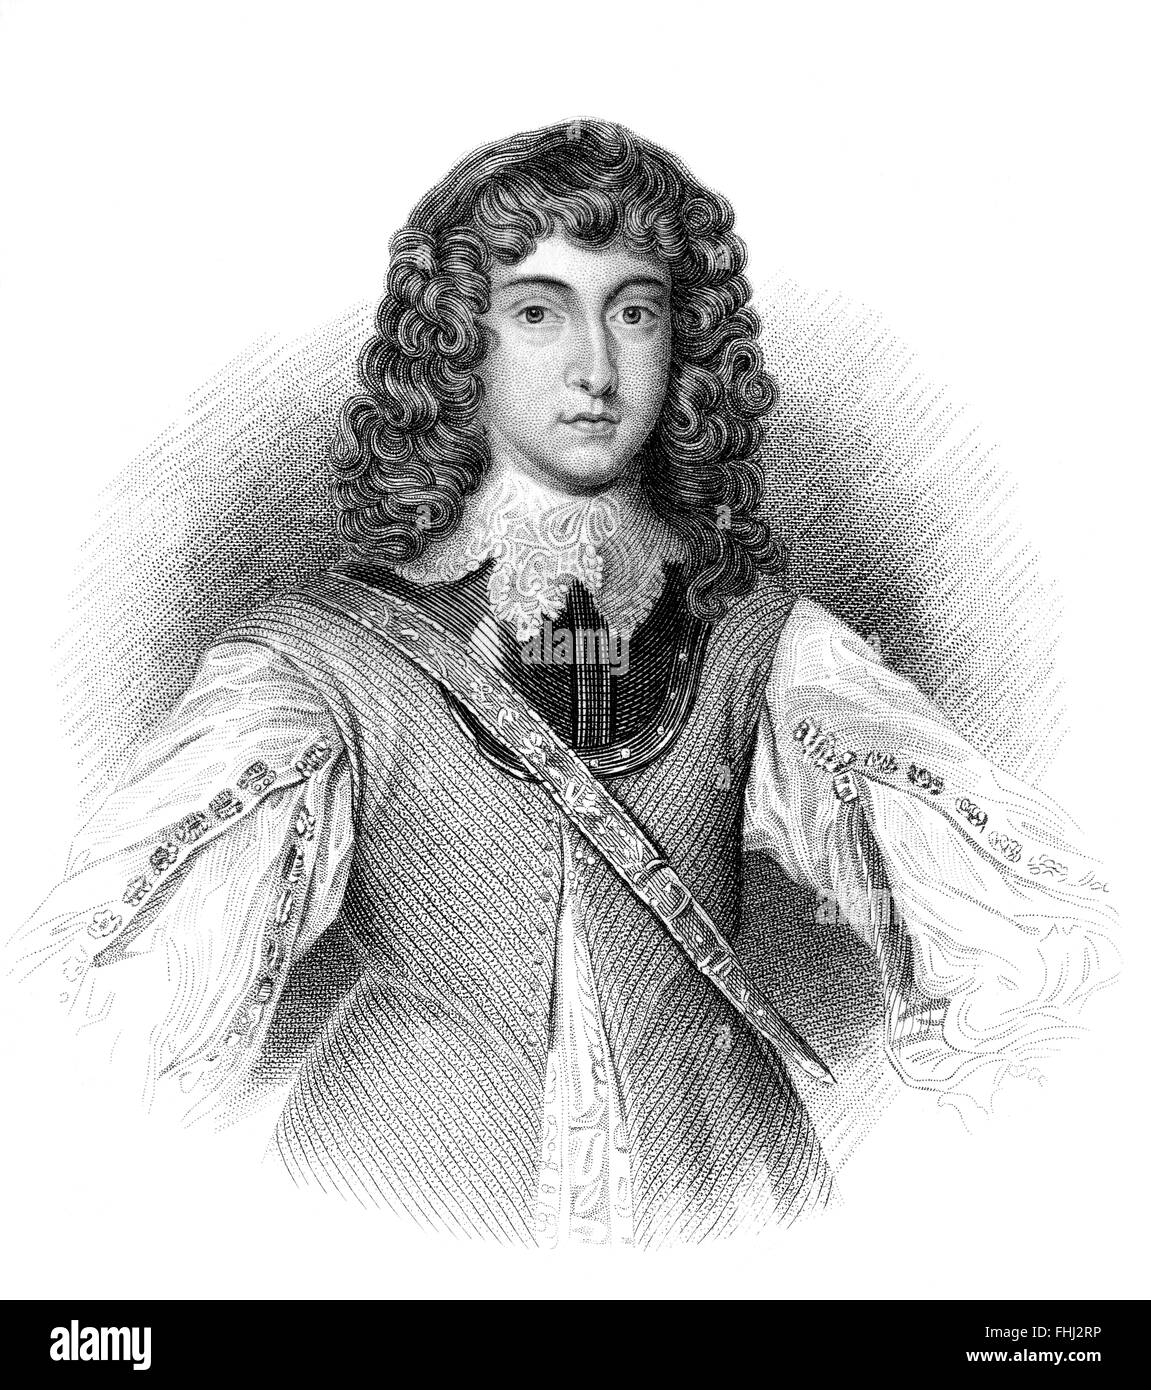 Prince Rupert of the Rhine, 1619-1682, a German soldier, admiral, scientist, sportsman, colonial governor - Stock Image